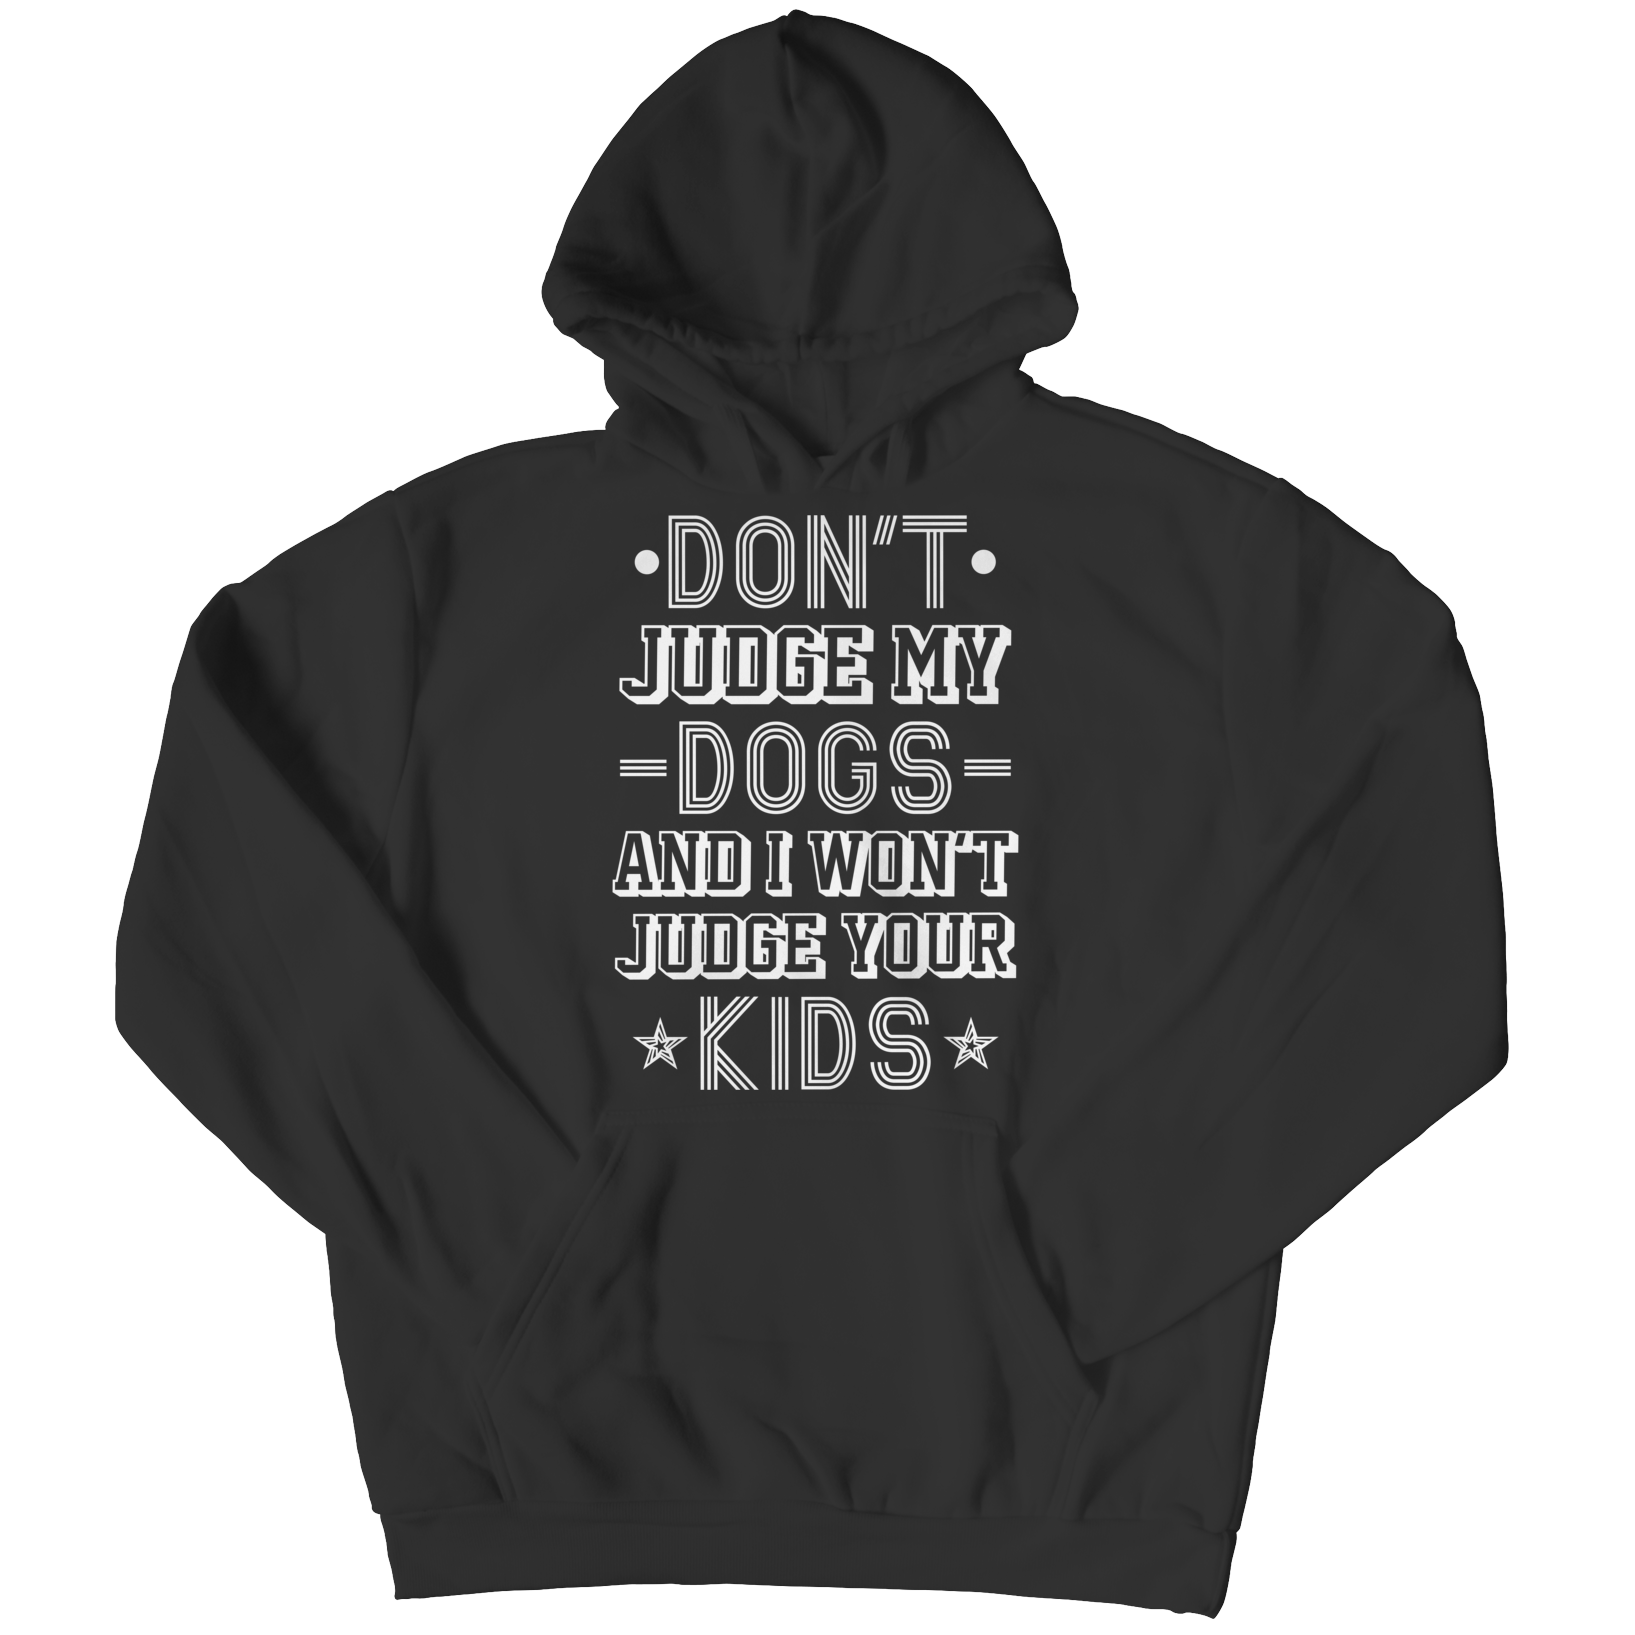 Don't Judge My Dogs and I Won't Judge Your Kids